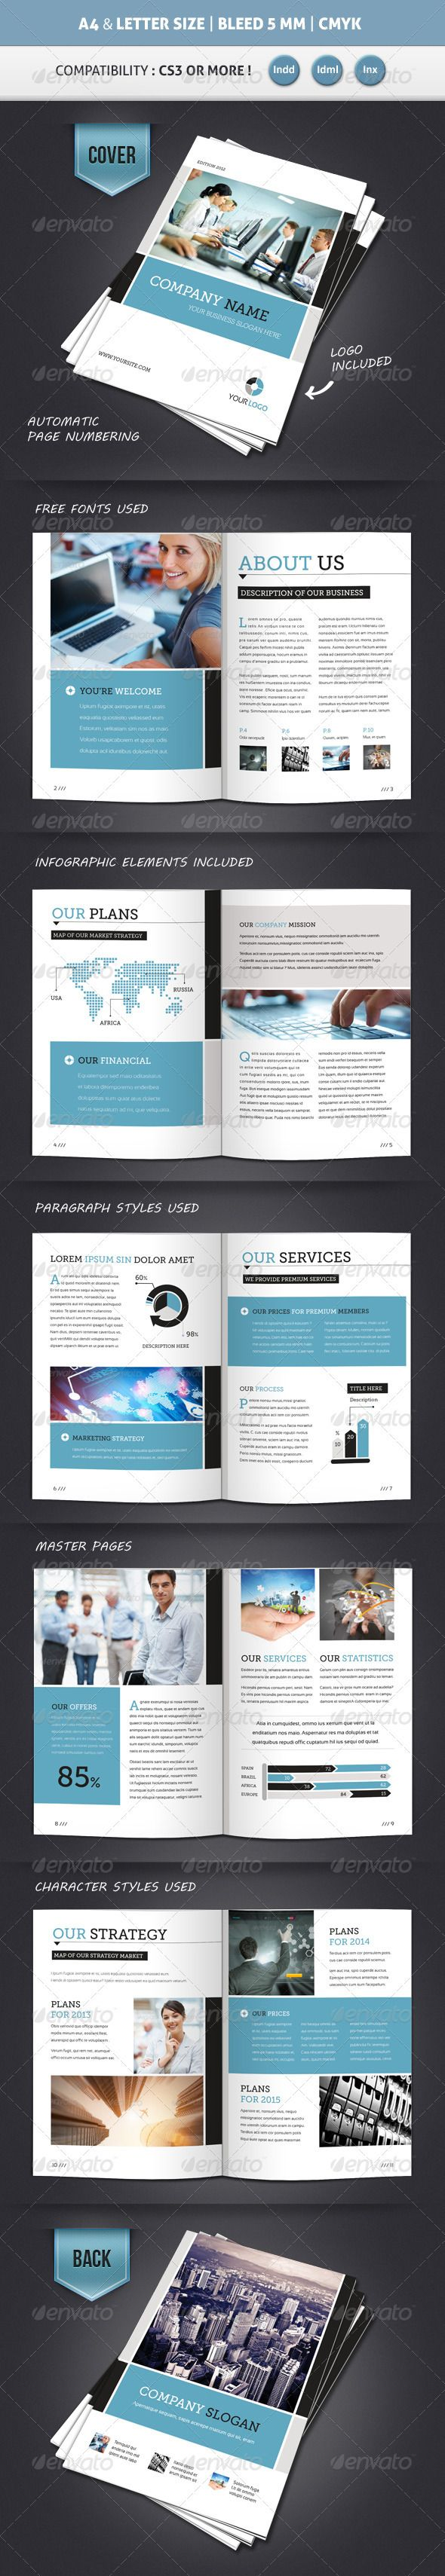 Best Brochure Images On Pinterest Brochures Rollup Banner - Pages brochure template